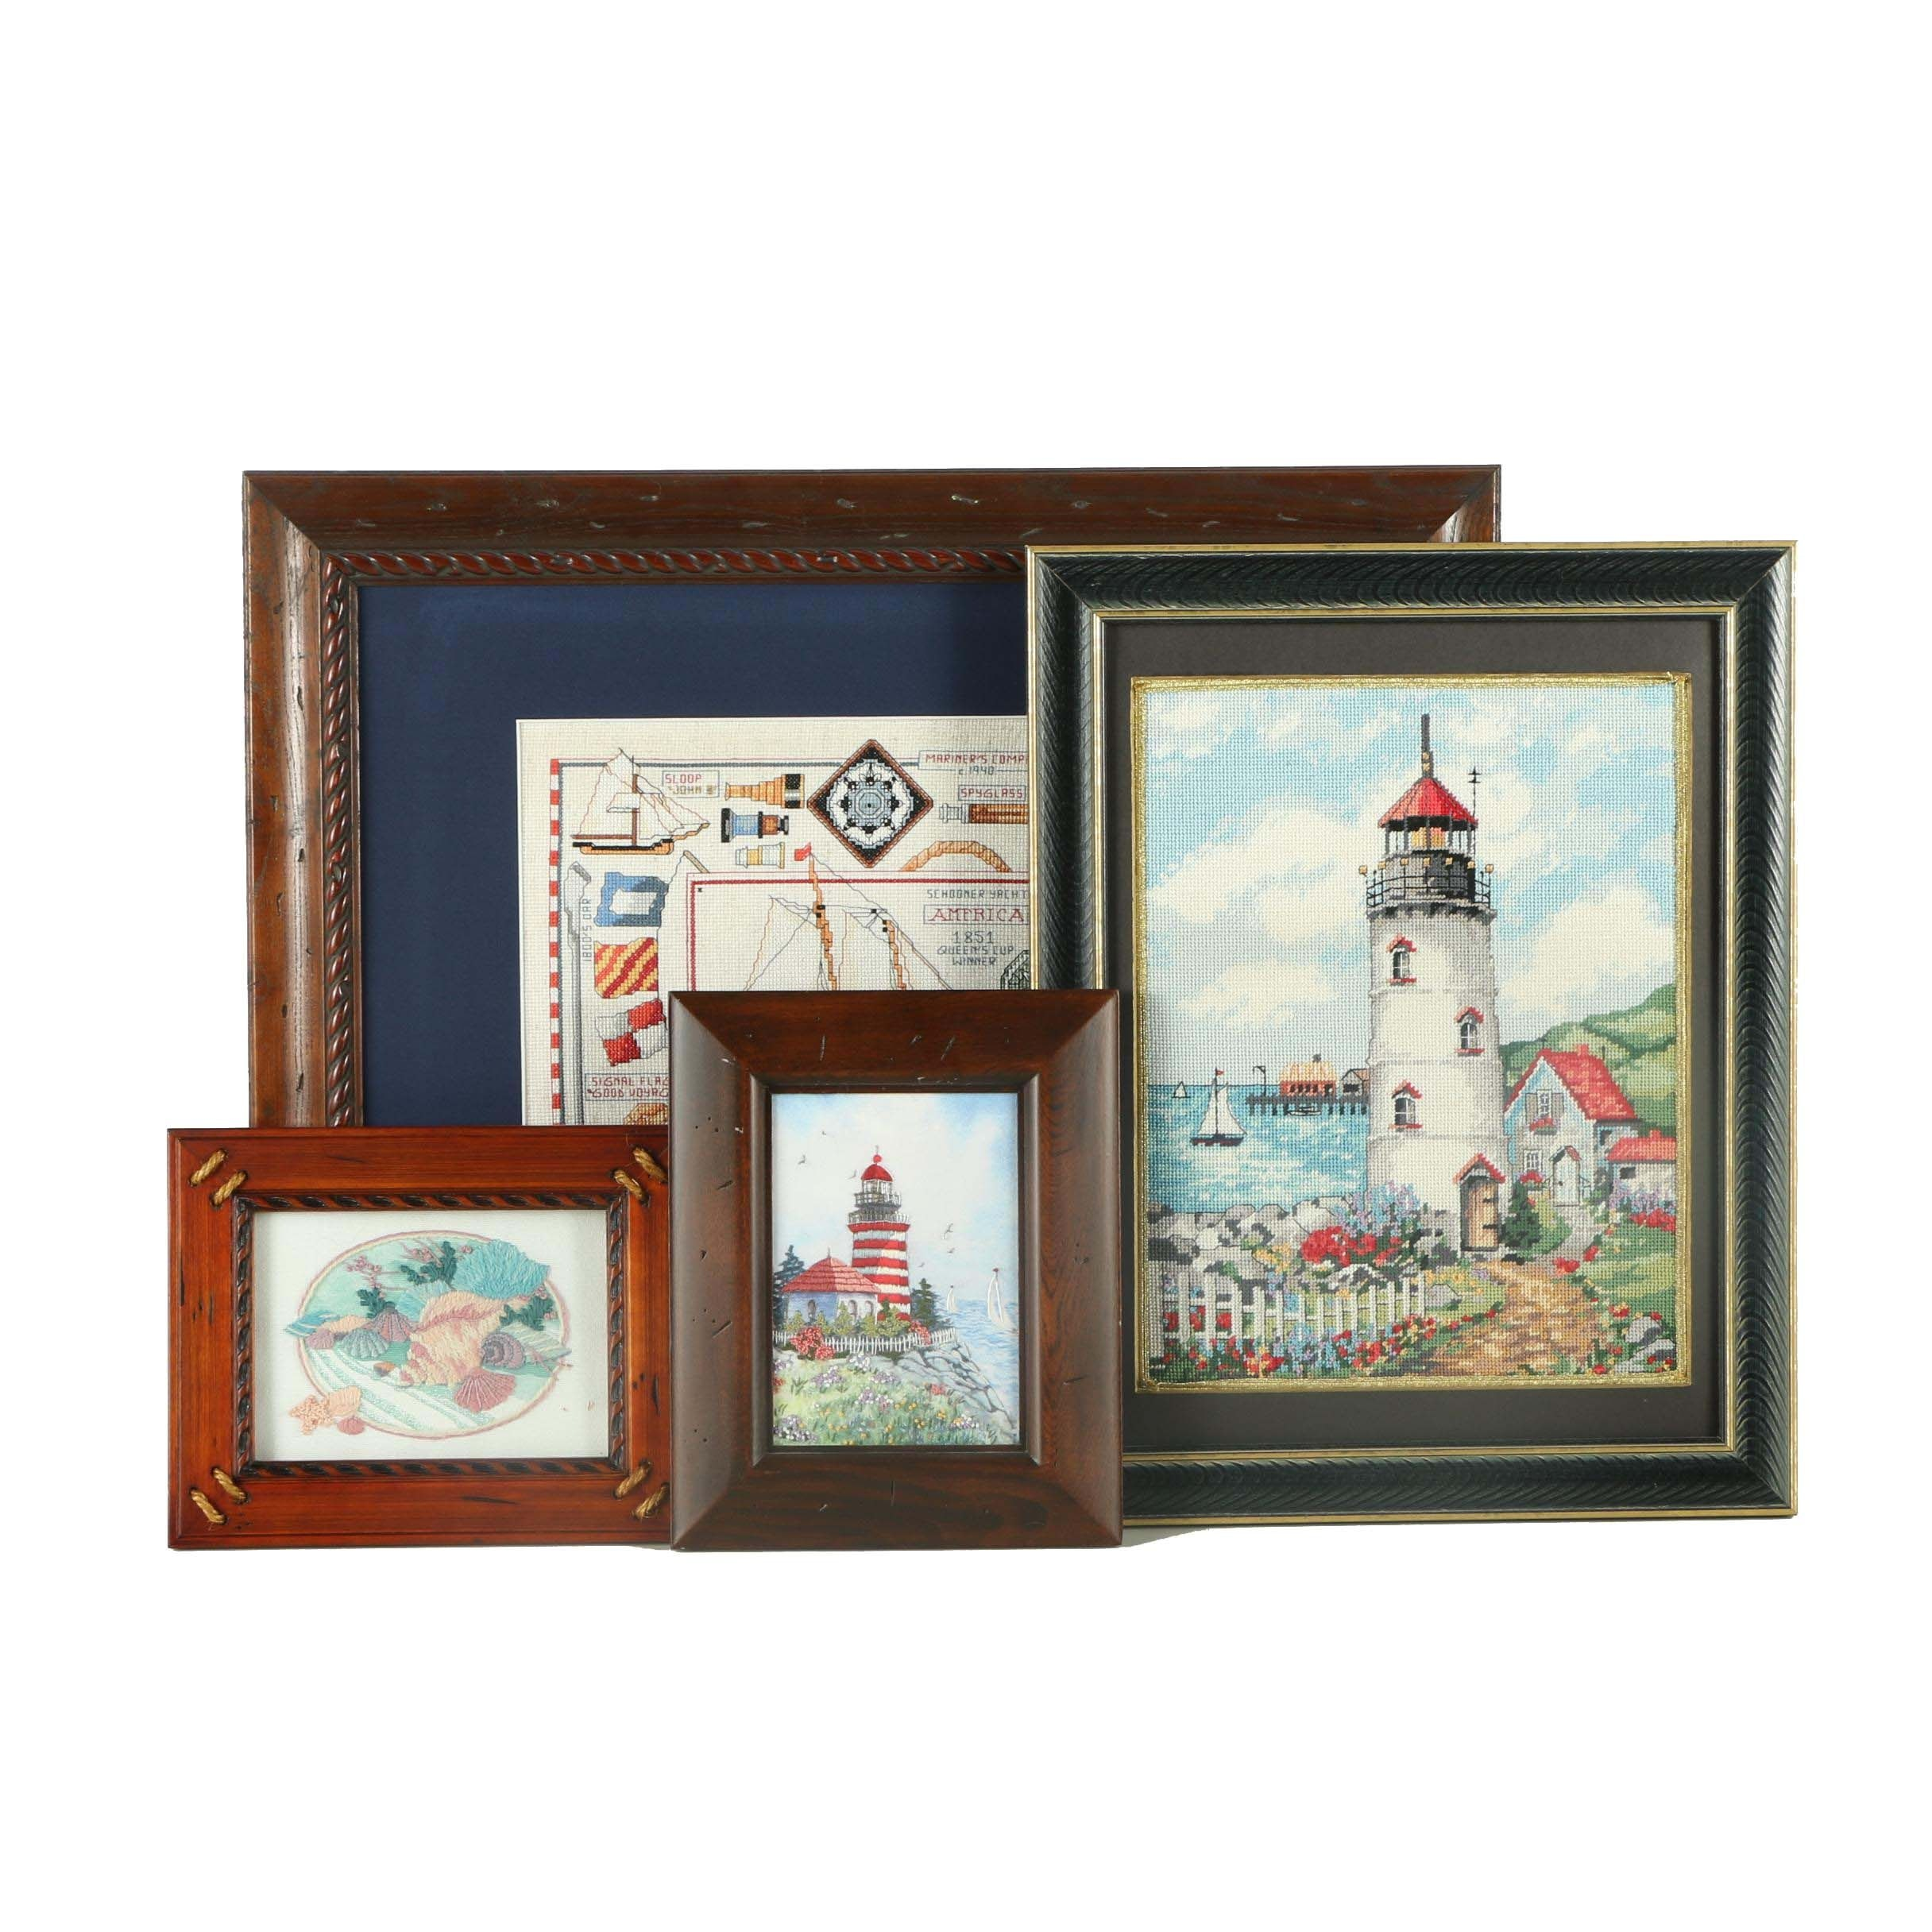 Framed Nautical Themed Needle Work Decor